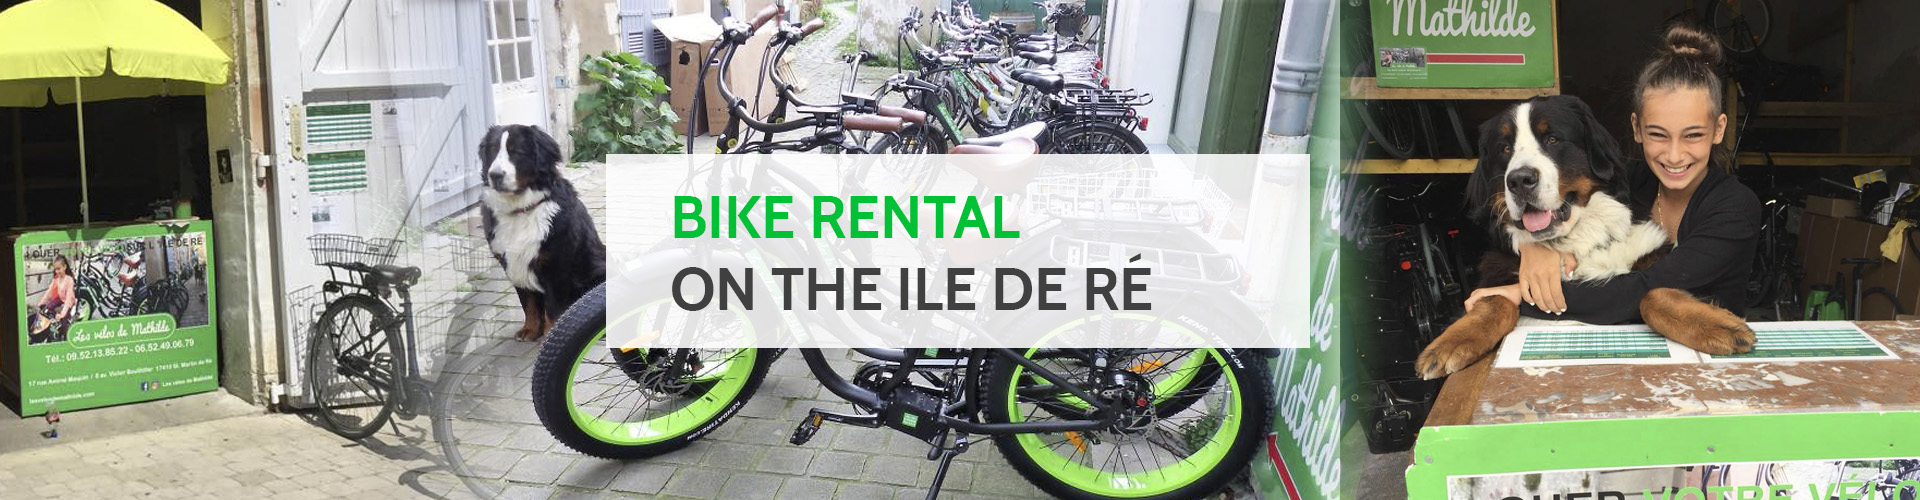 Bike rental on the ile de Ré